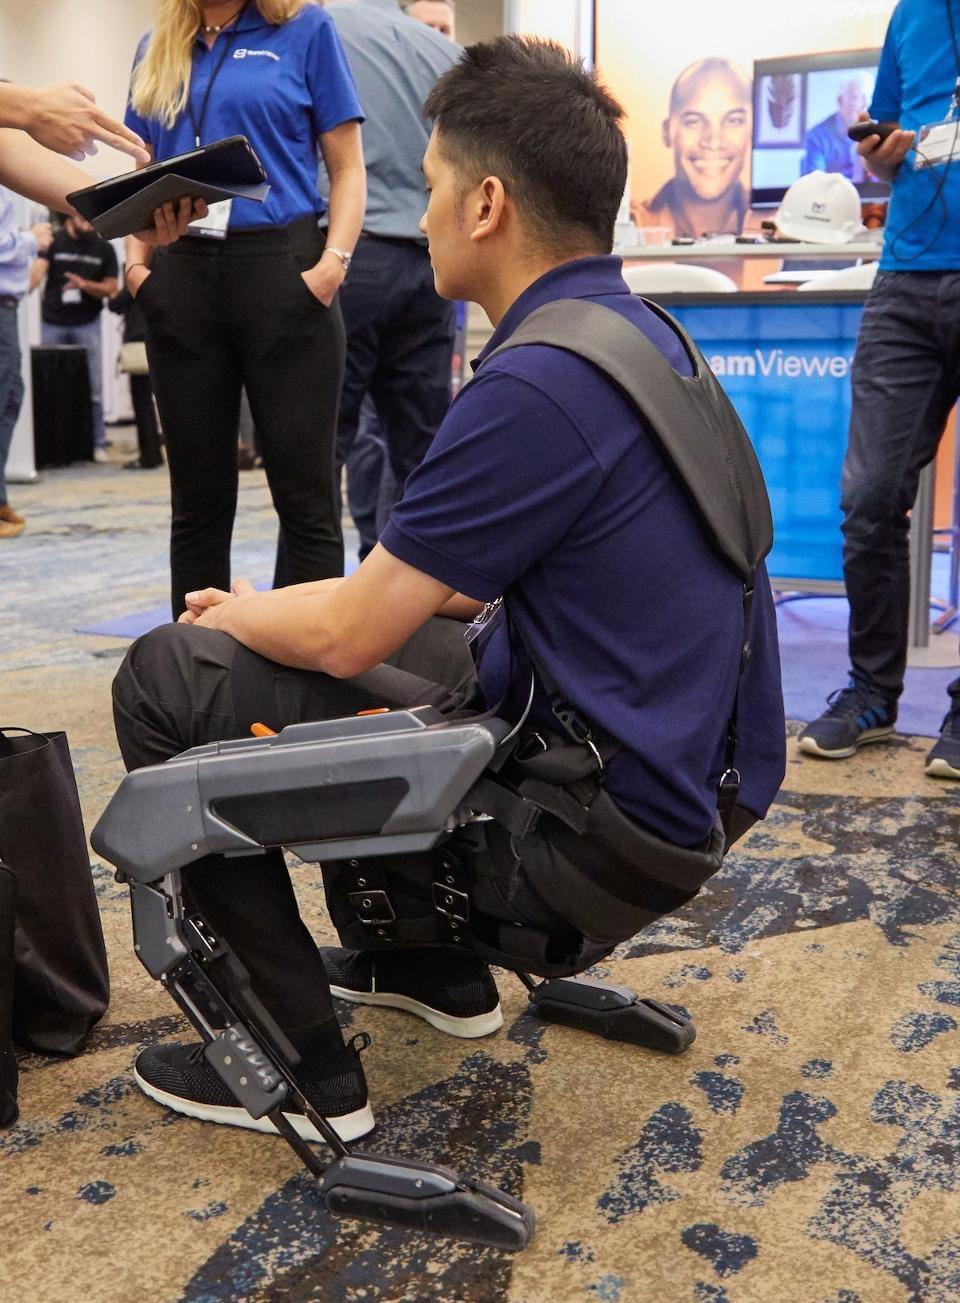 The Astride exoskeletion is built to reduce fatigue and injury to frontline workers. JASON GILMORE